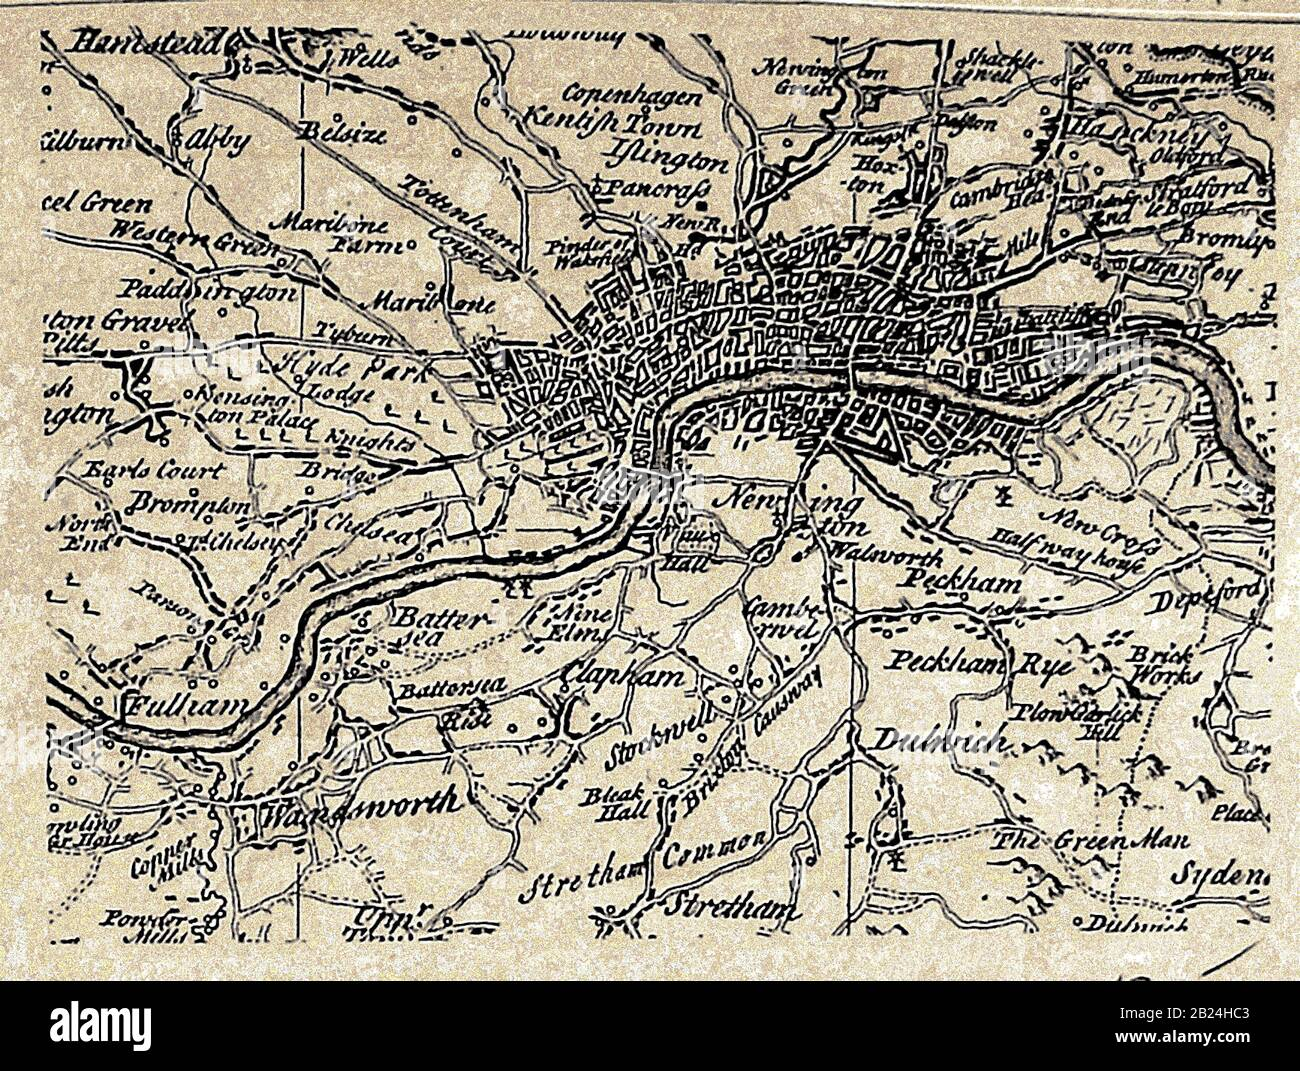 A map of the city of  London (UK) , villages, inns, surrounds etc  in the 1700's, with spellings at that time Stock Photo